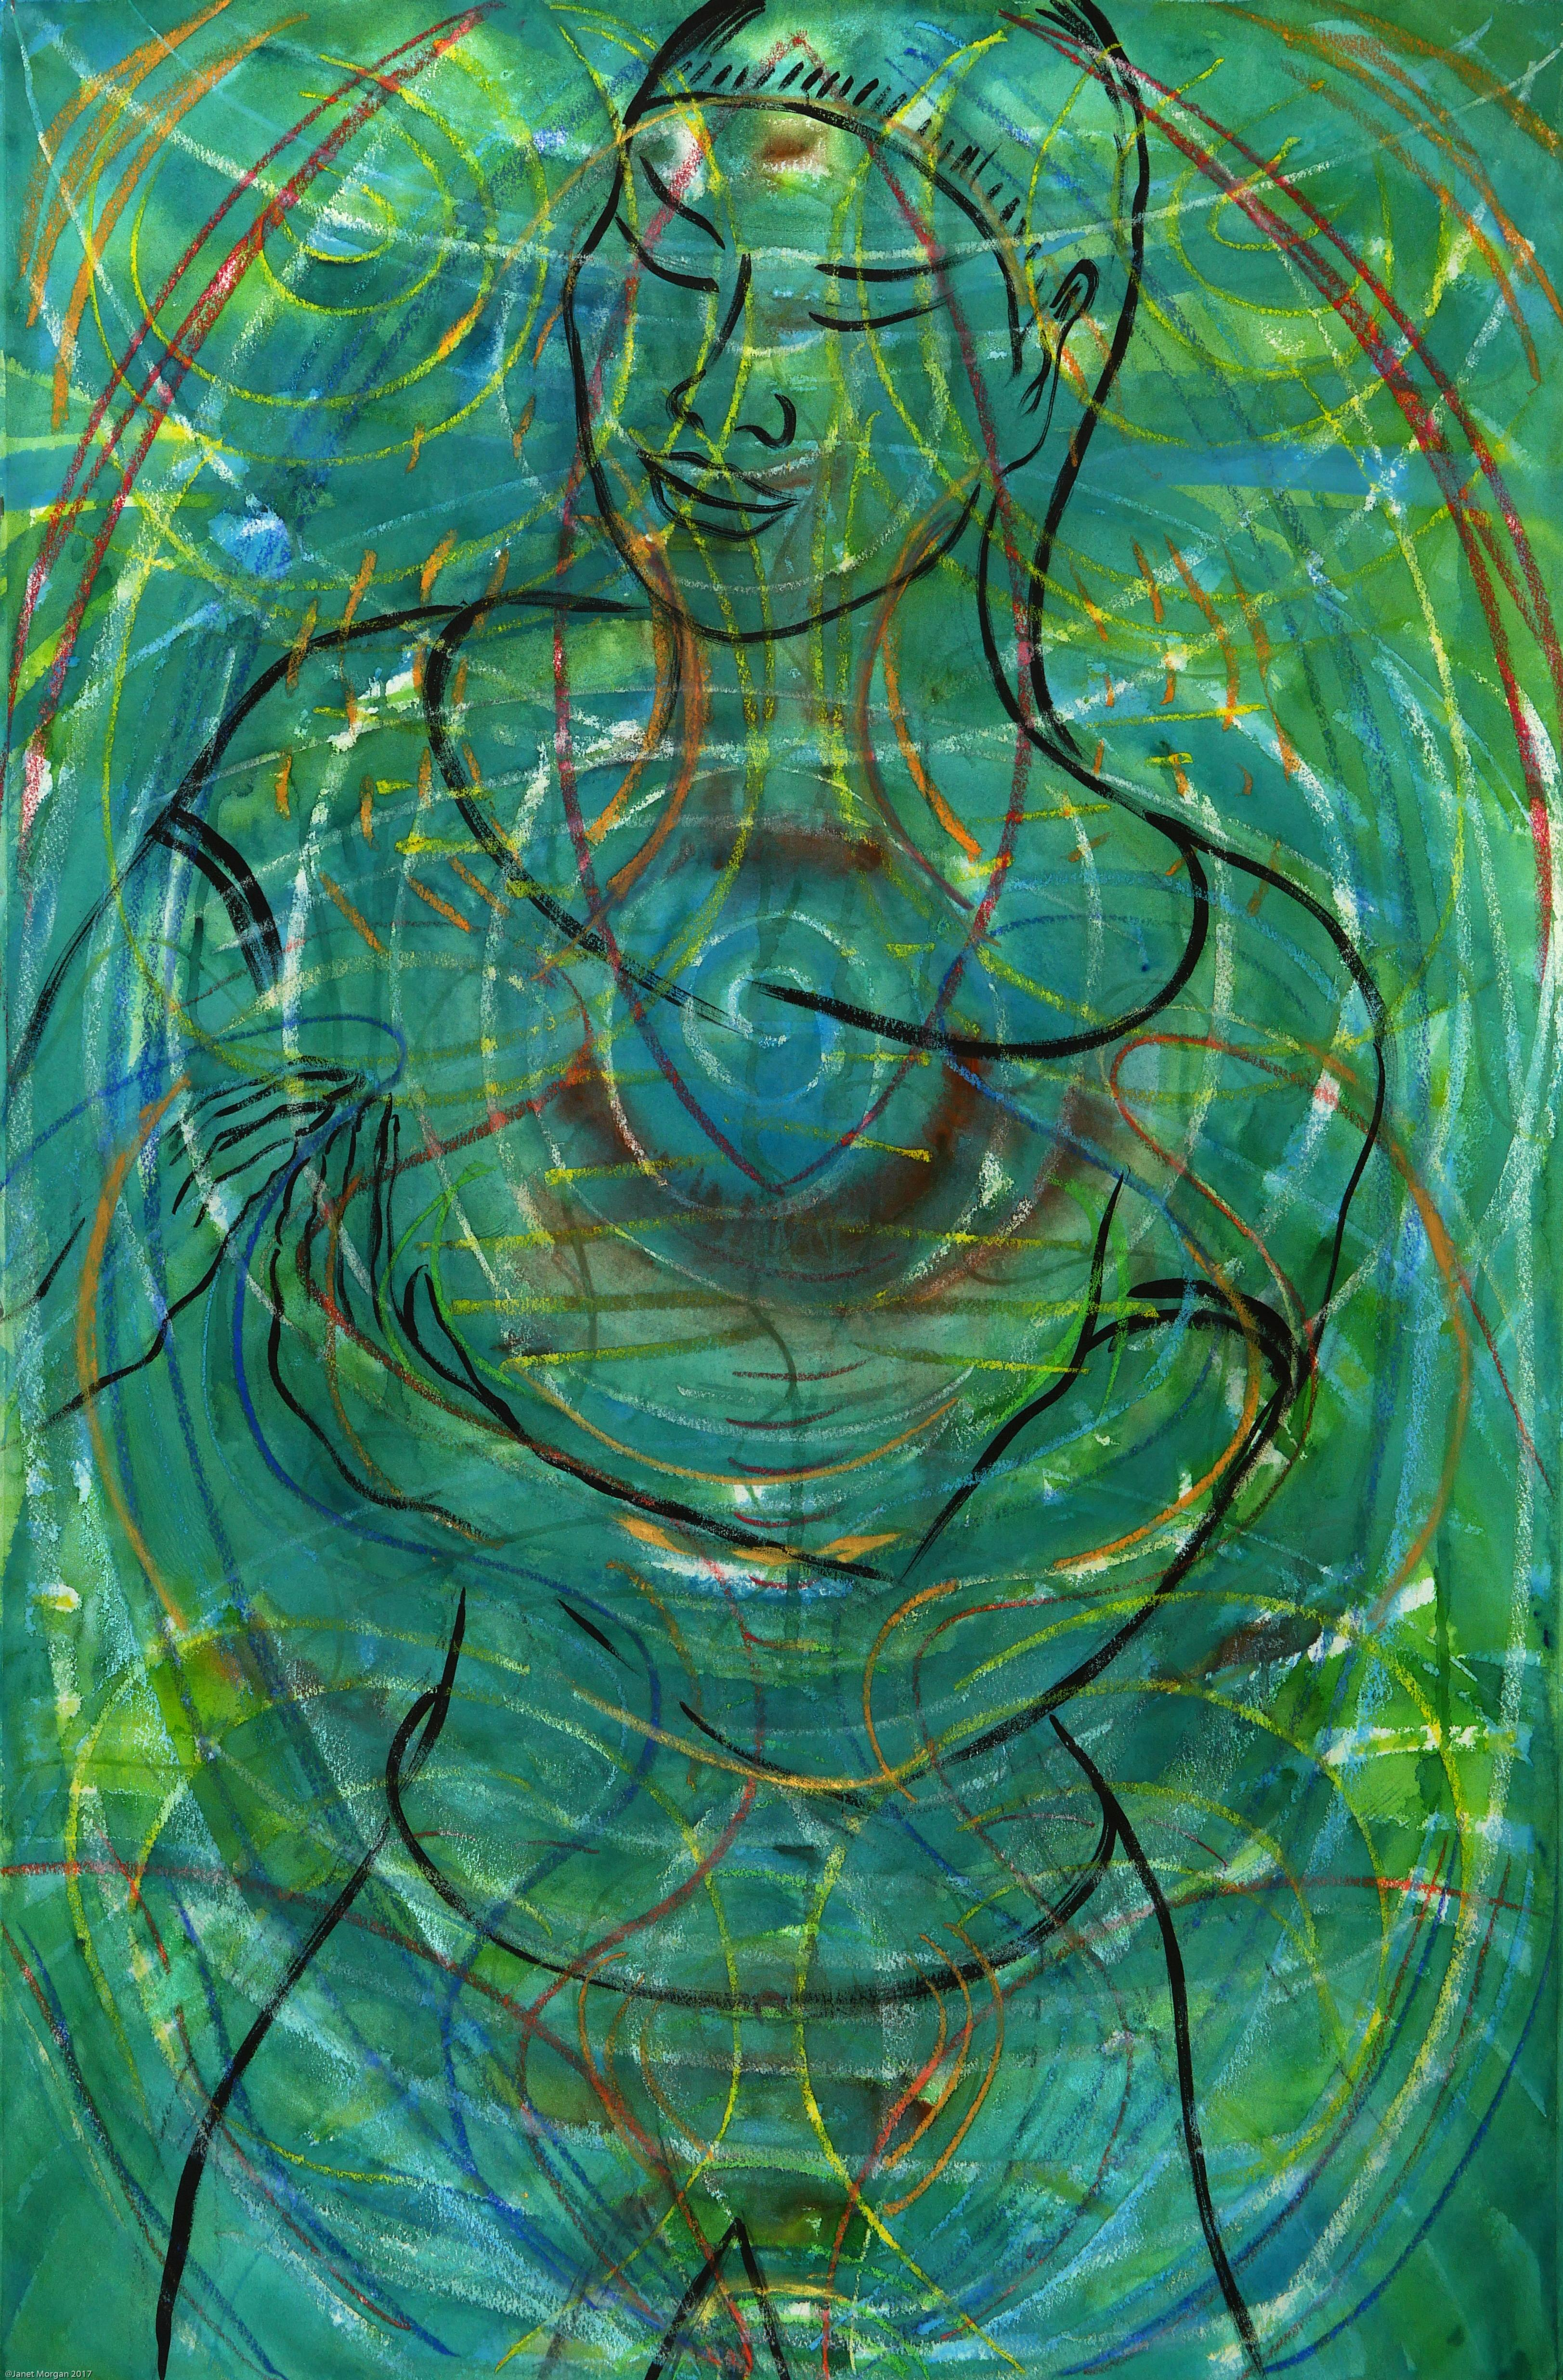 Stringer, colorful green figurative abstraction